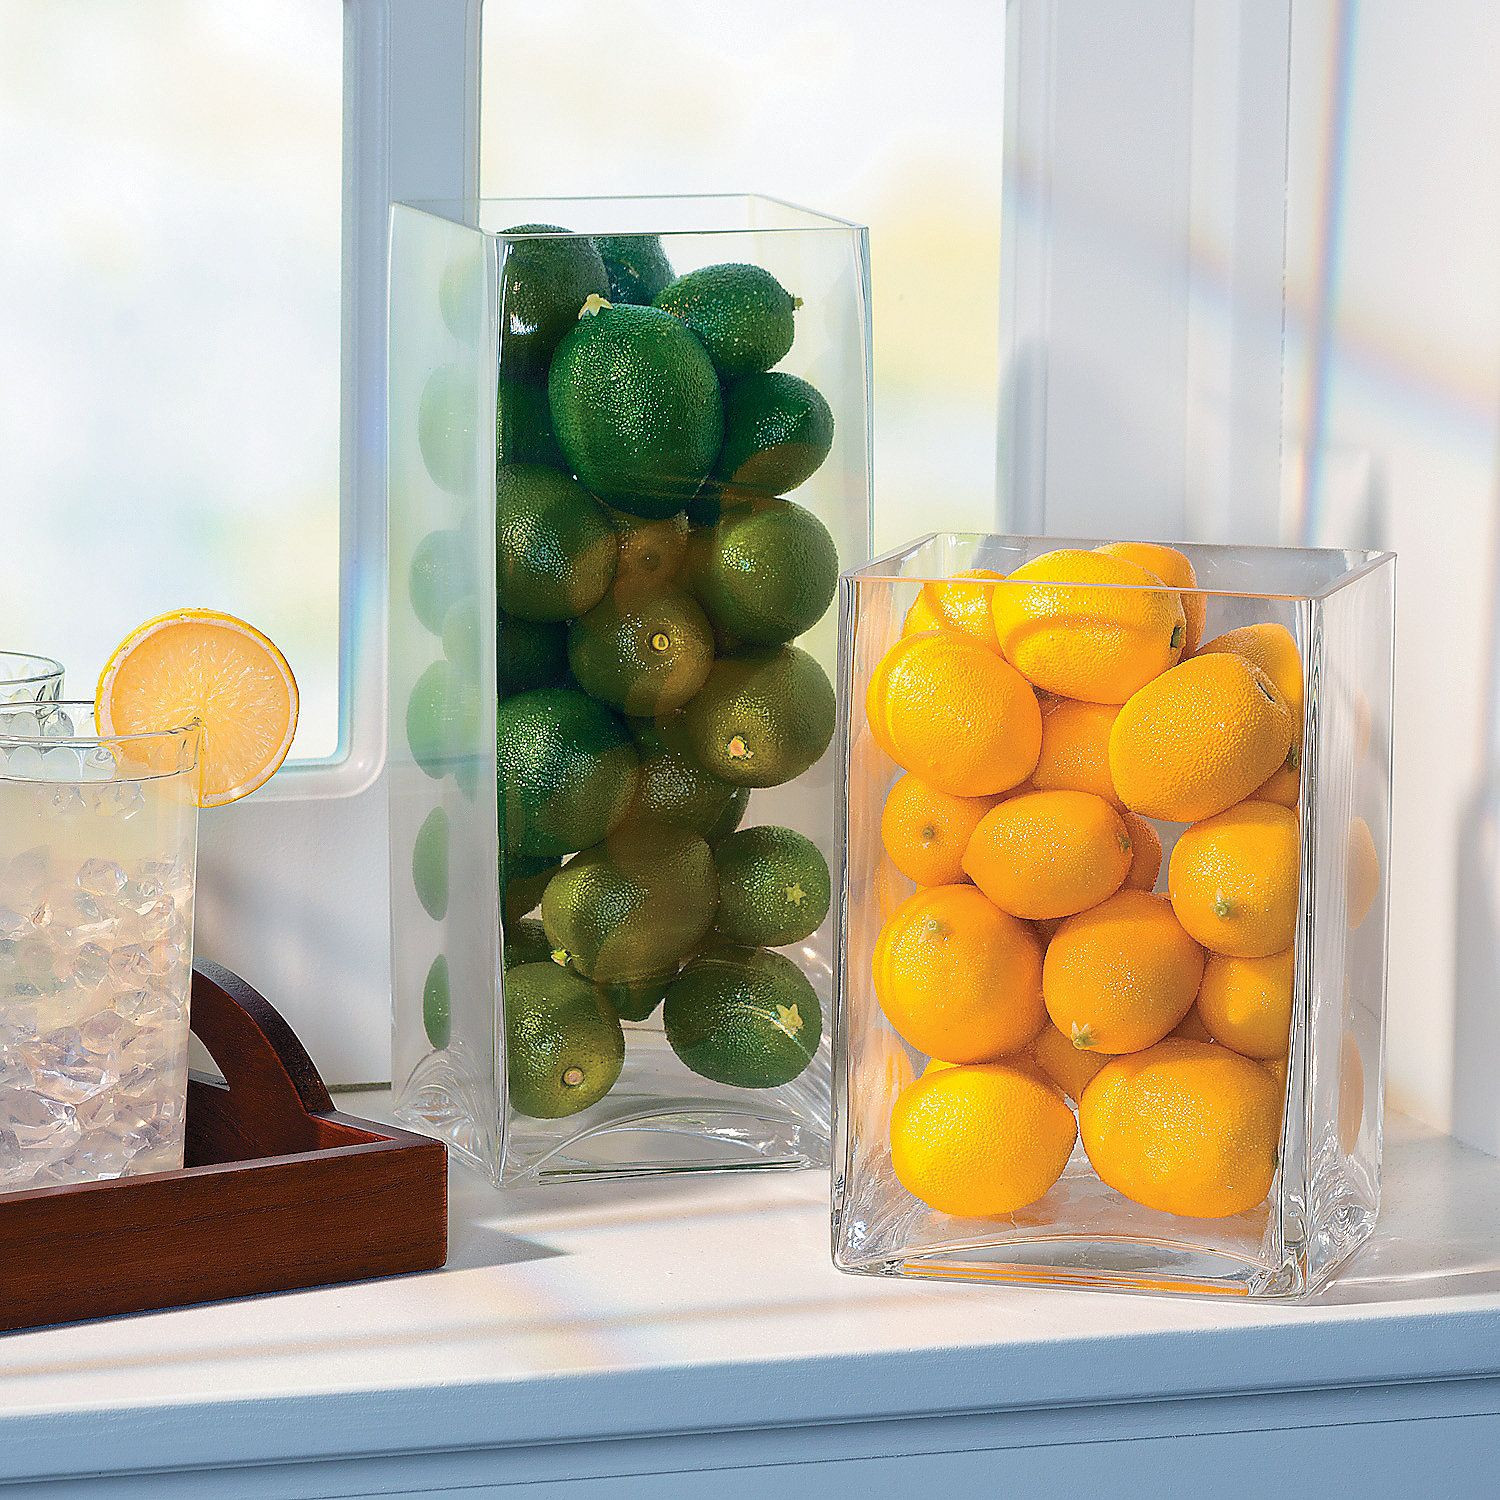 threshold vase filler rocks of containers filled with lemons and limes can use any glass vase inside containers filled with lemons and limes can use any glass vase available